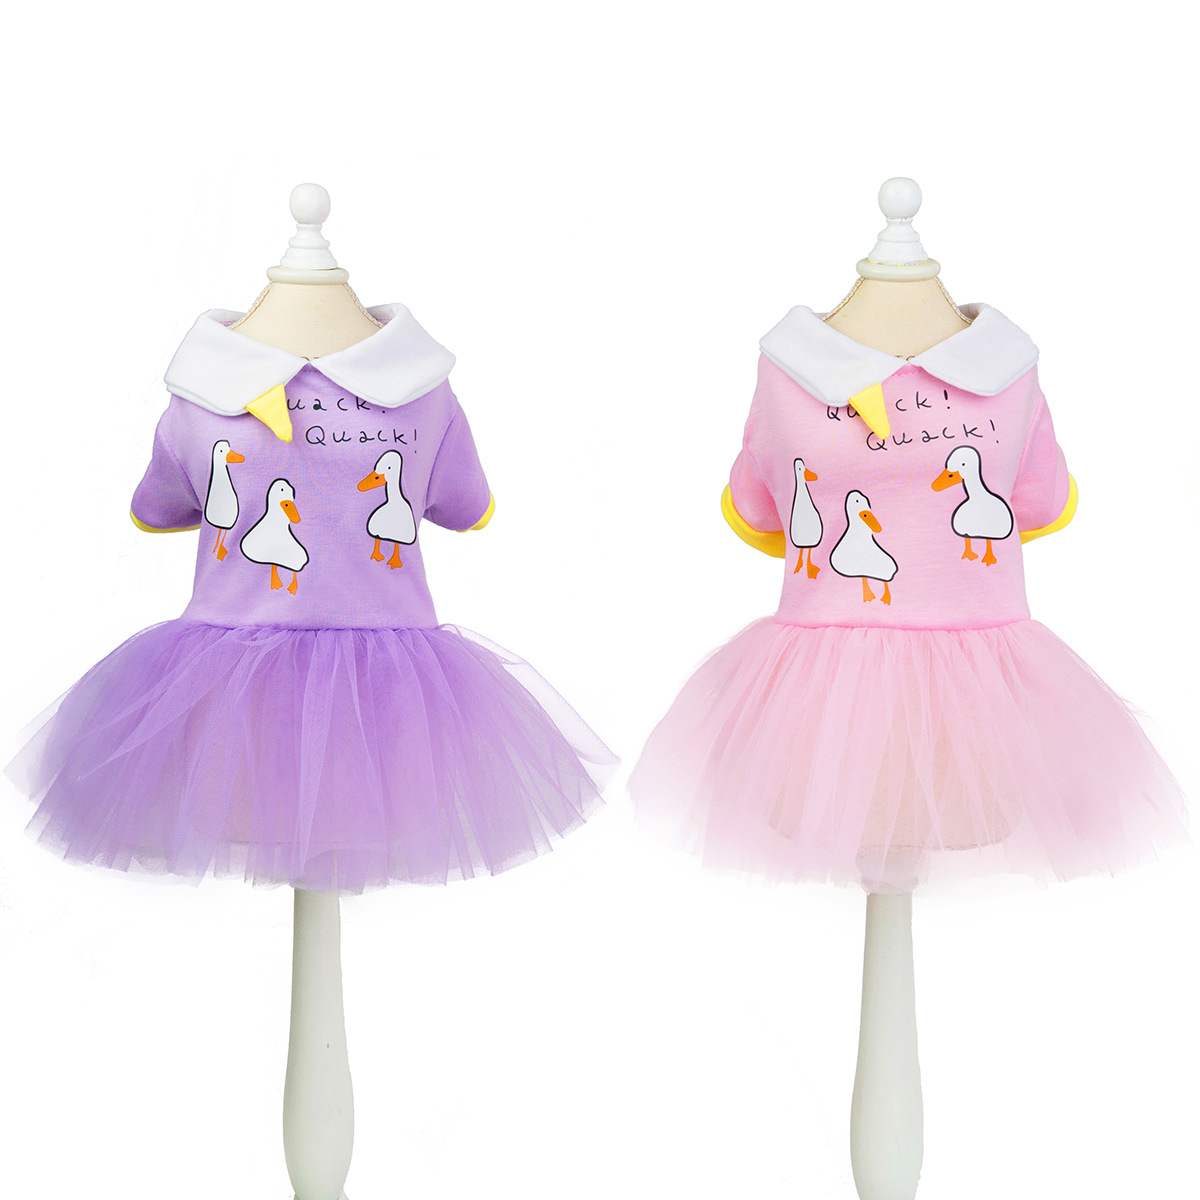 Adorable Pastel-Colored Pet Dress for Home Parties